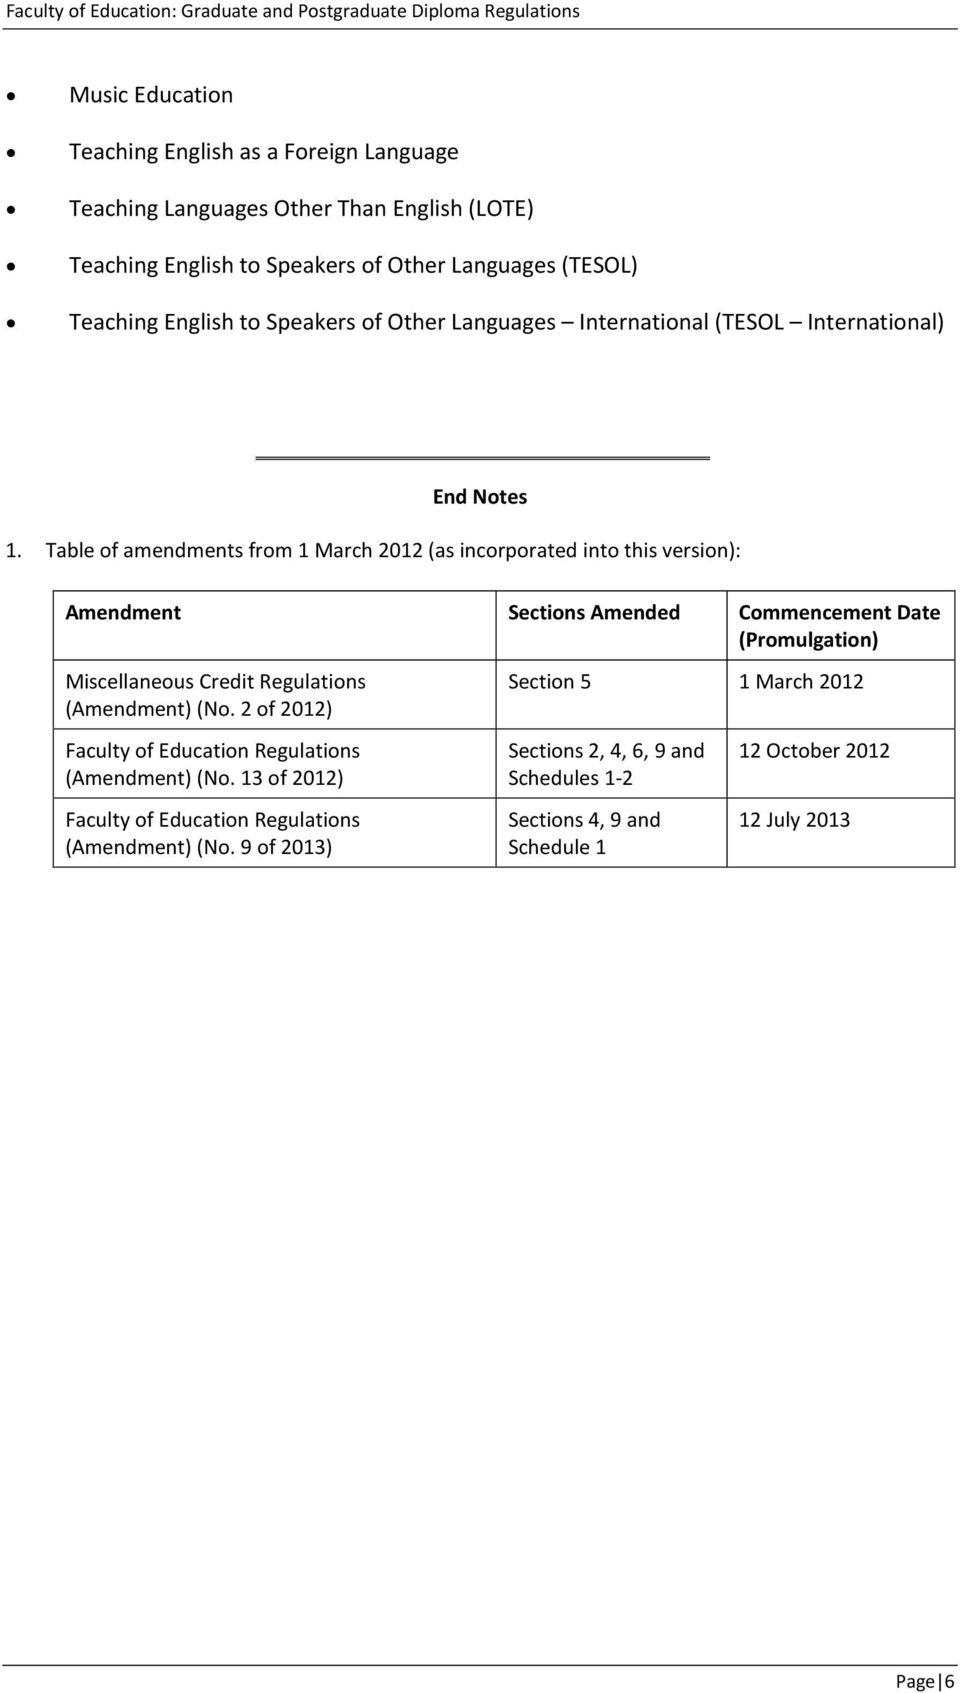 Table of amendments from 1 March 2012 (as incorporated into this version): Amendment Sections Amended Commencement Date (Promulgation) Miscellaneous Credit Regulations